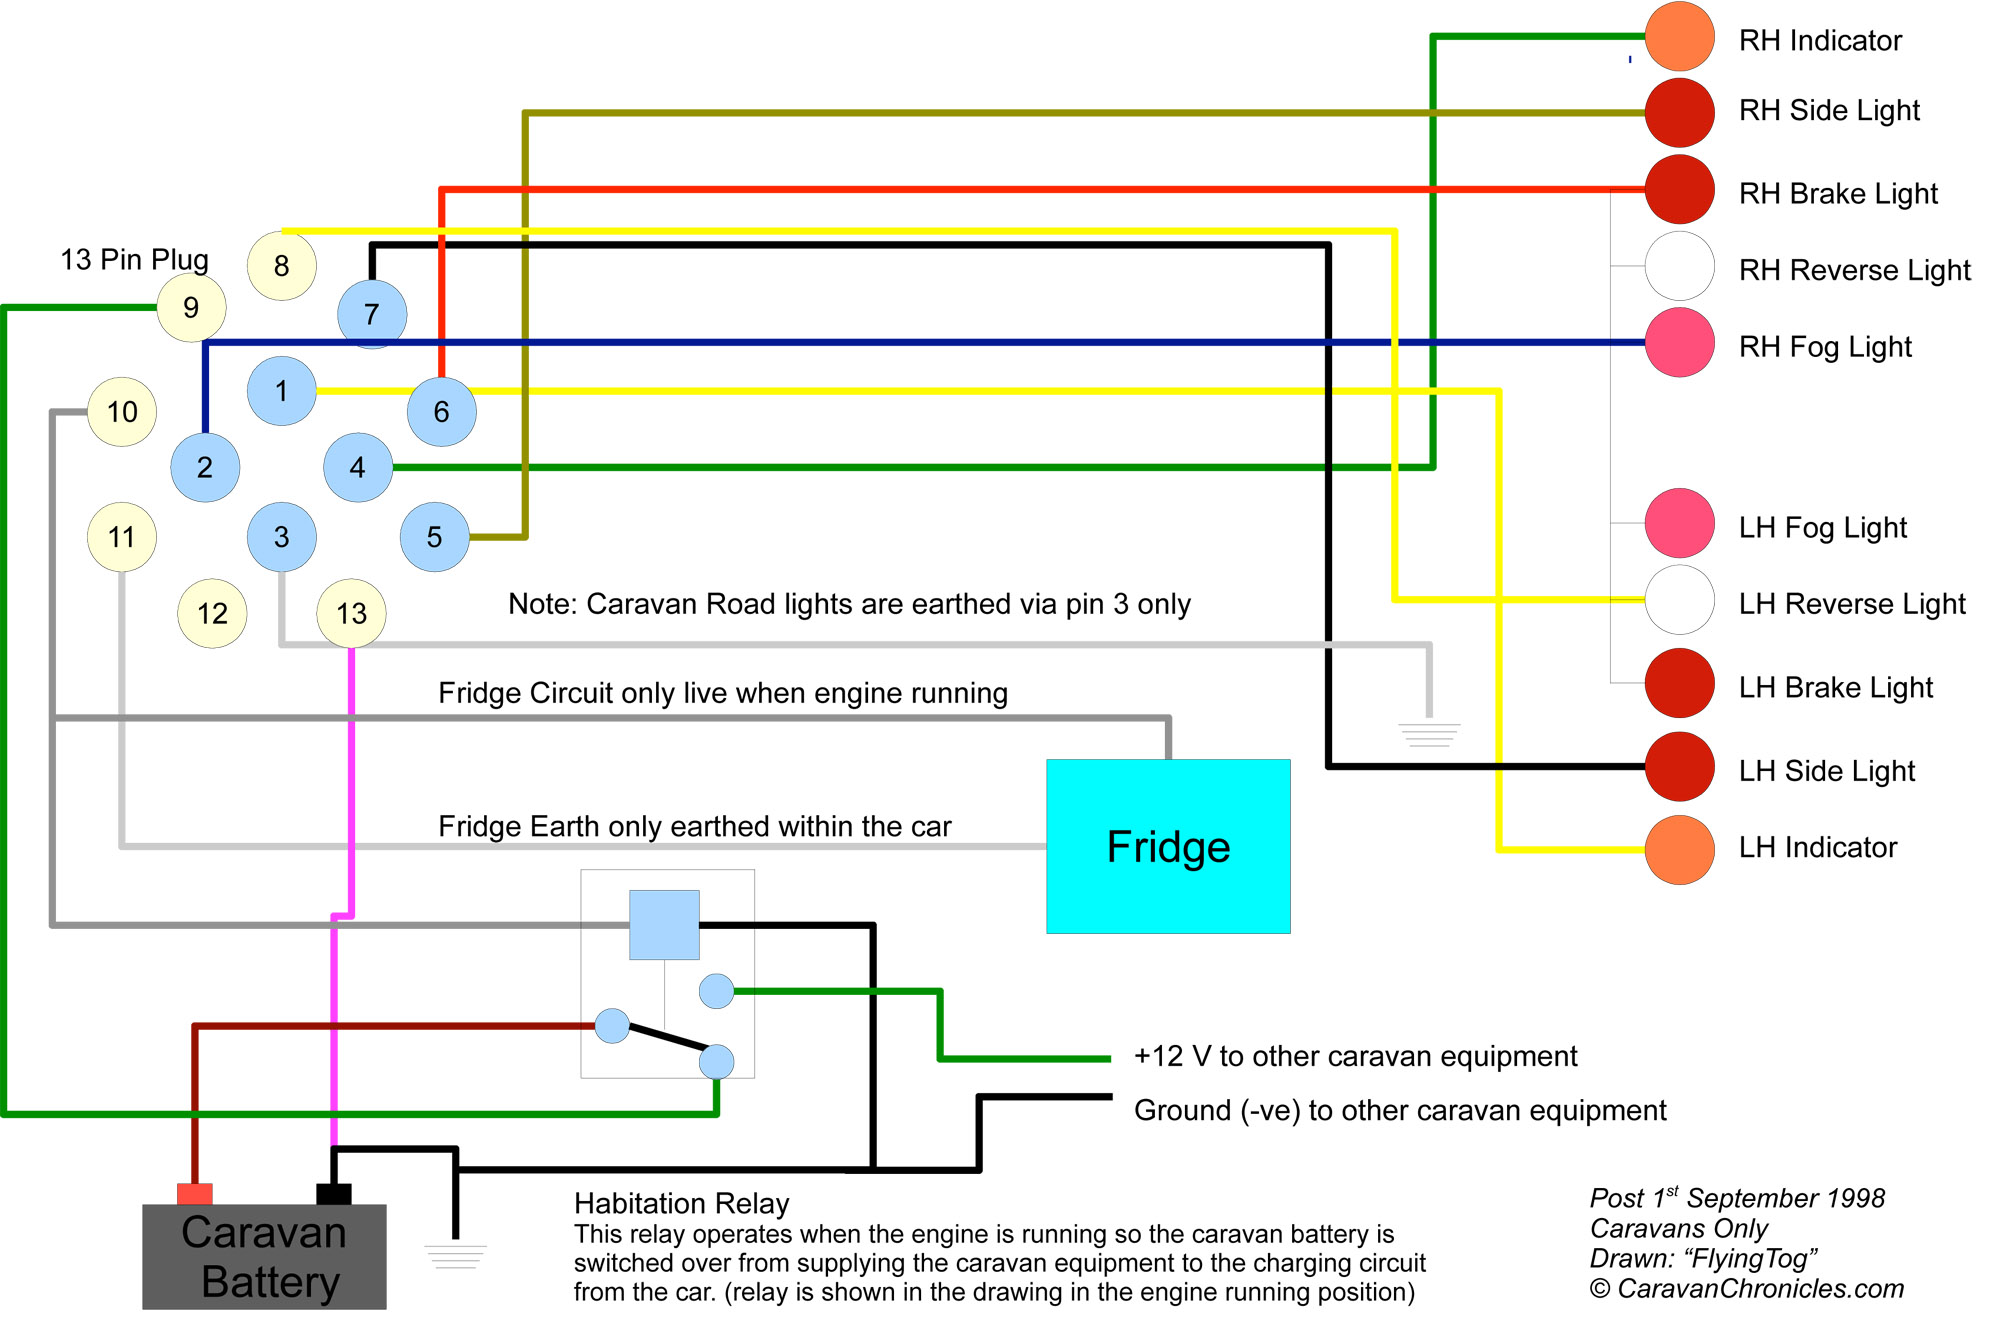 hight resolution of caravan relay wiring diagram schema diagram databaseunderstanding the leisure battery charging circuit caravan chronicles caravan habitation